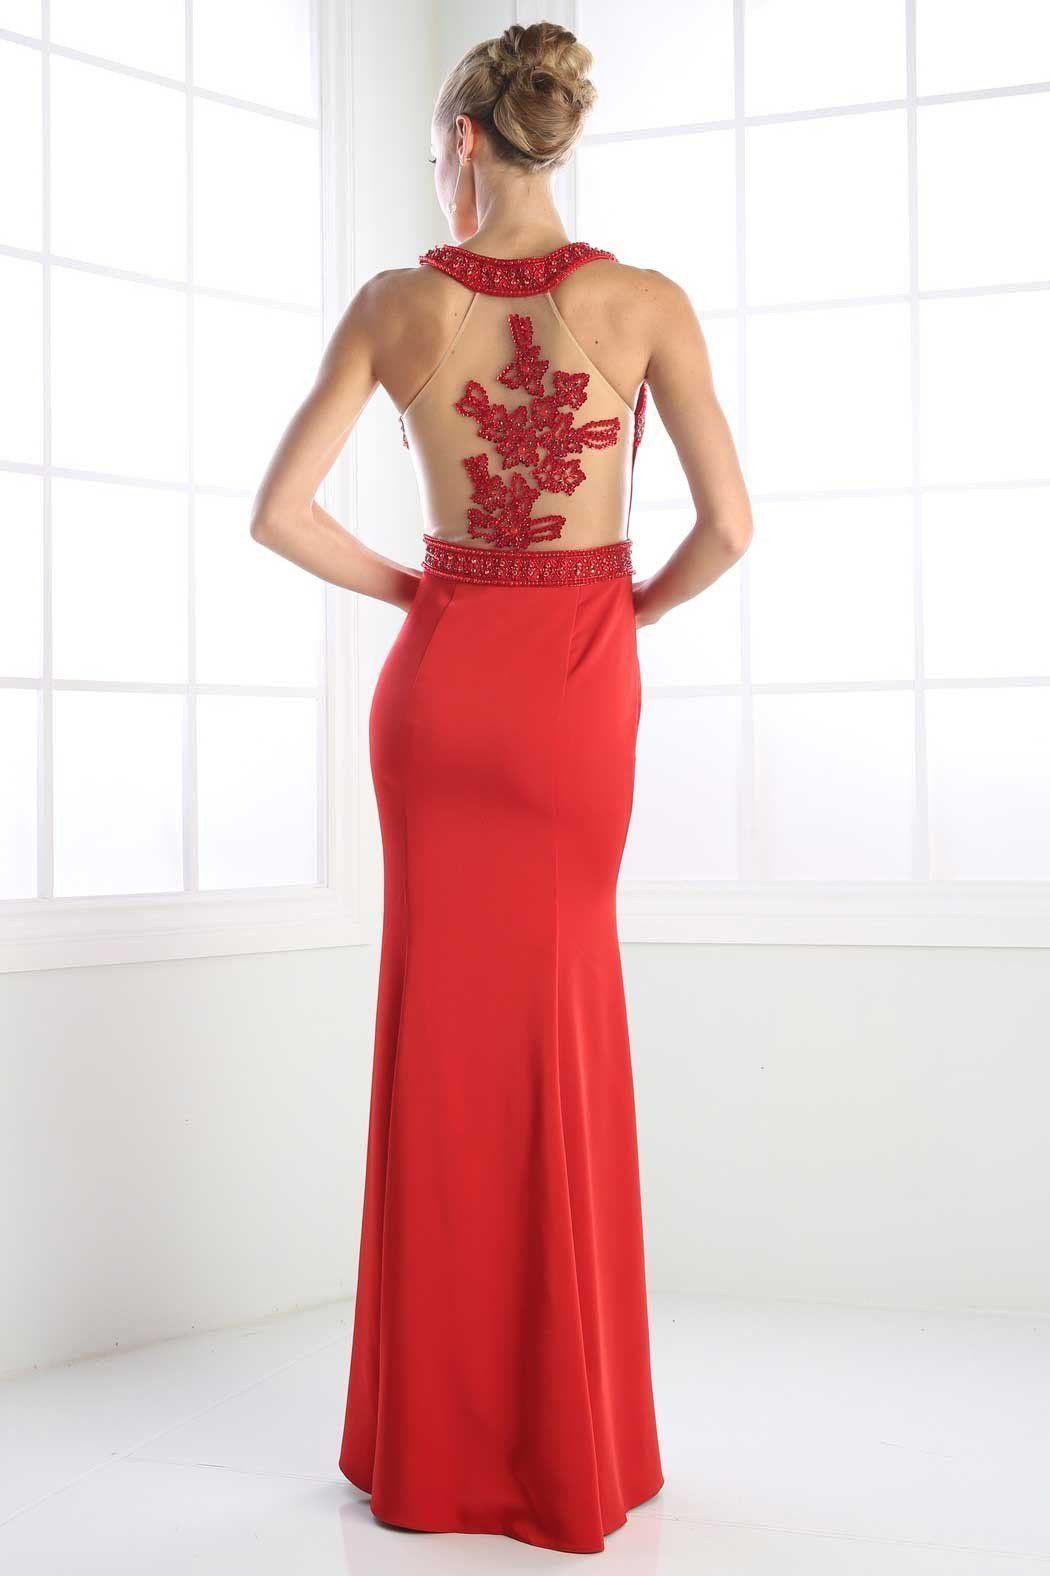 Evening gown cdp in products pinterest prom dresses